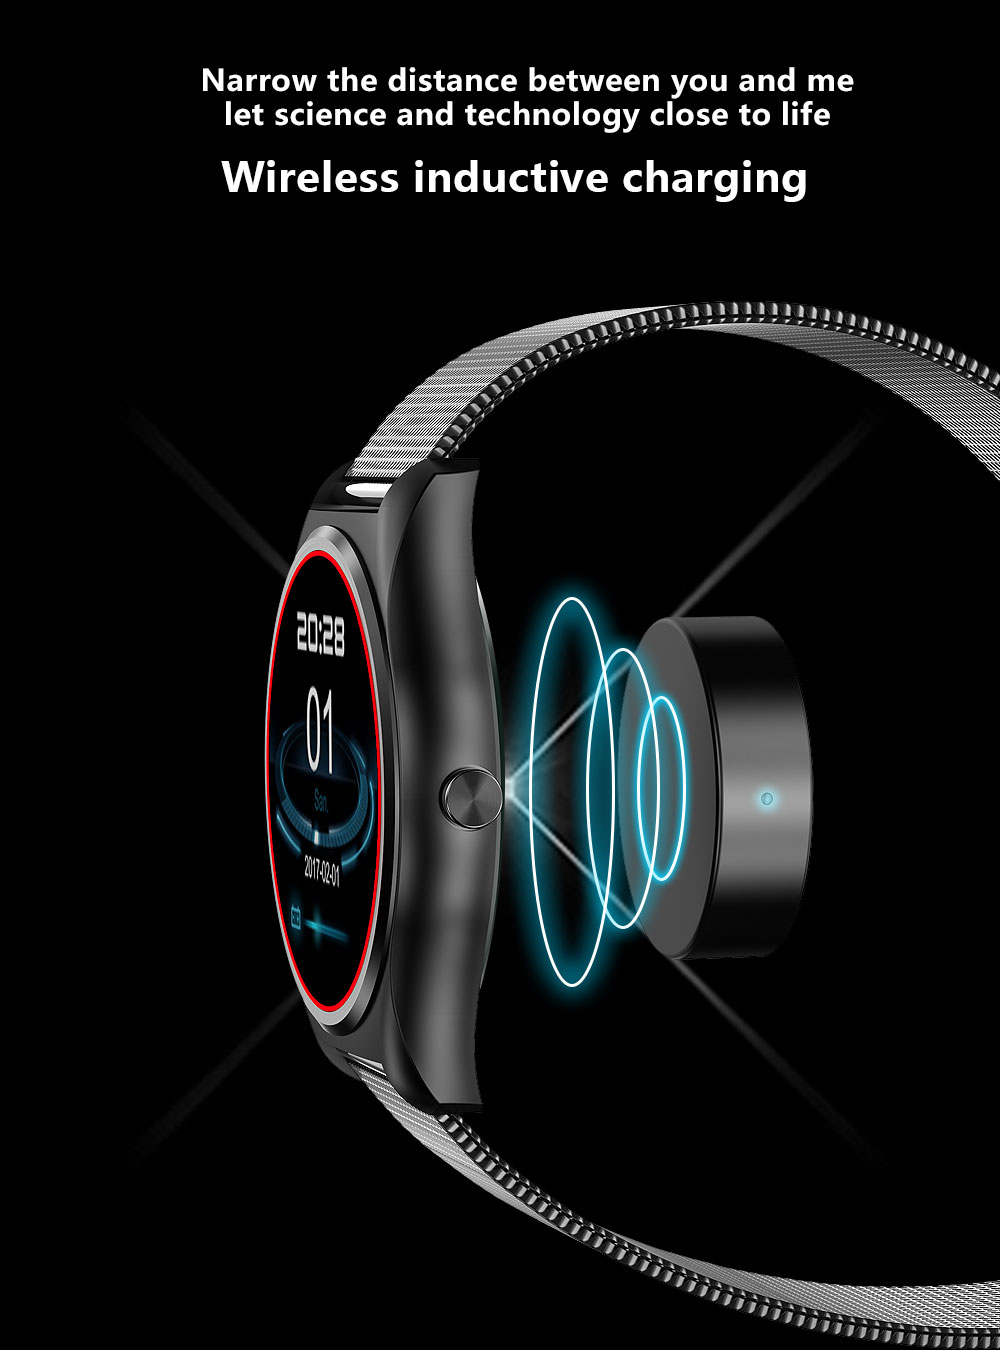 New Round Clock MTK2502c Wireless Charging Smart Watch Heart Rate Bluetooth Call SMS Sync Smartwatch for iOS Android pk K88h G6 wireless service call bell system popular in restaurant ce passed 433 92mhz full equipment watch pager 1 watch 7 call button